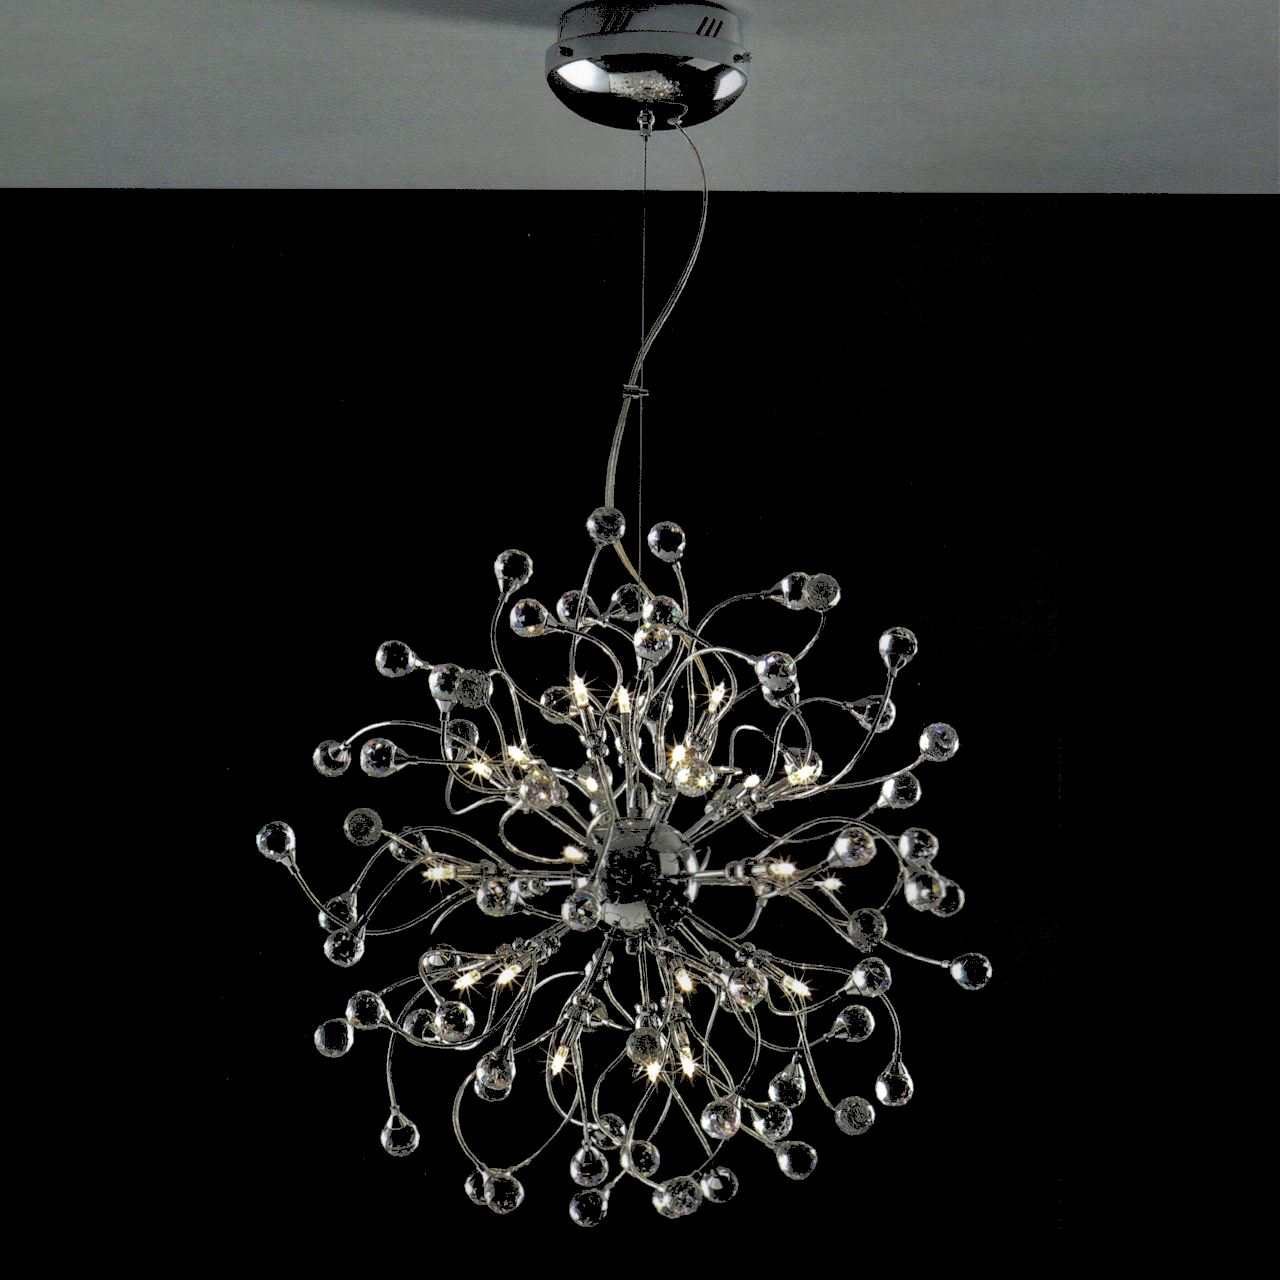 Modern Round Chandeliers Brizzo Lighting Stores 24 Quot Sfera Modern Crystal Round